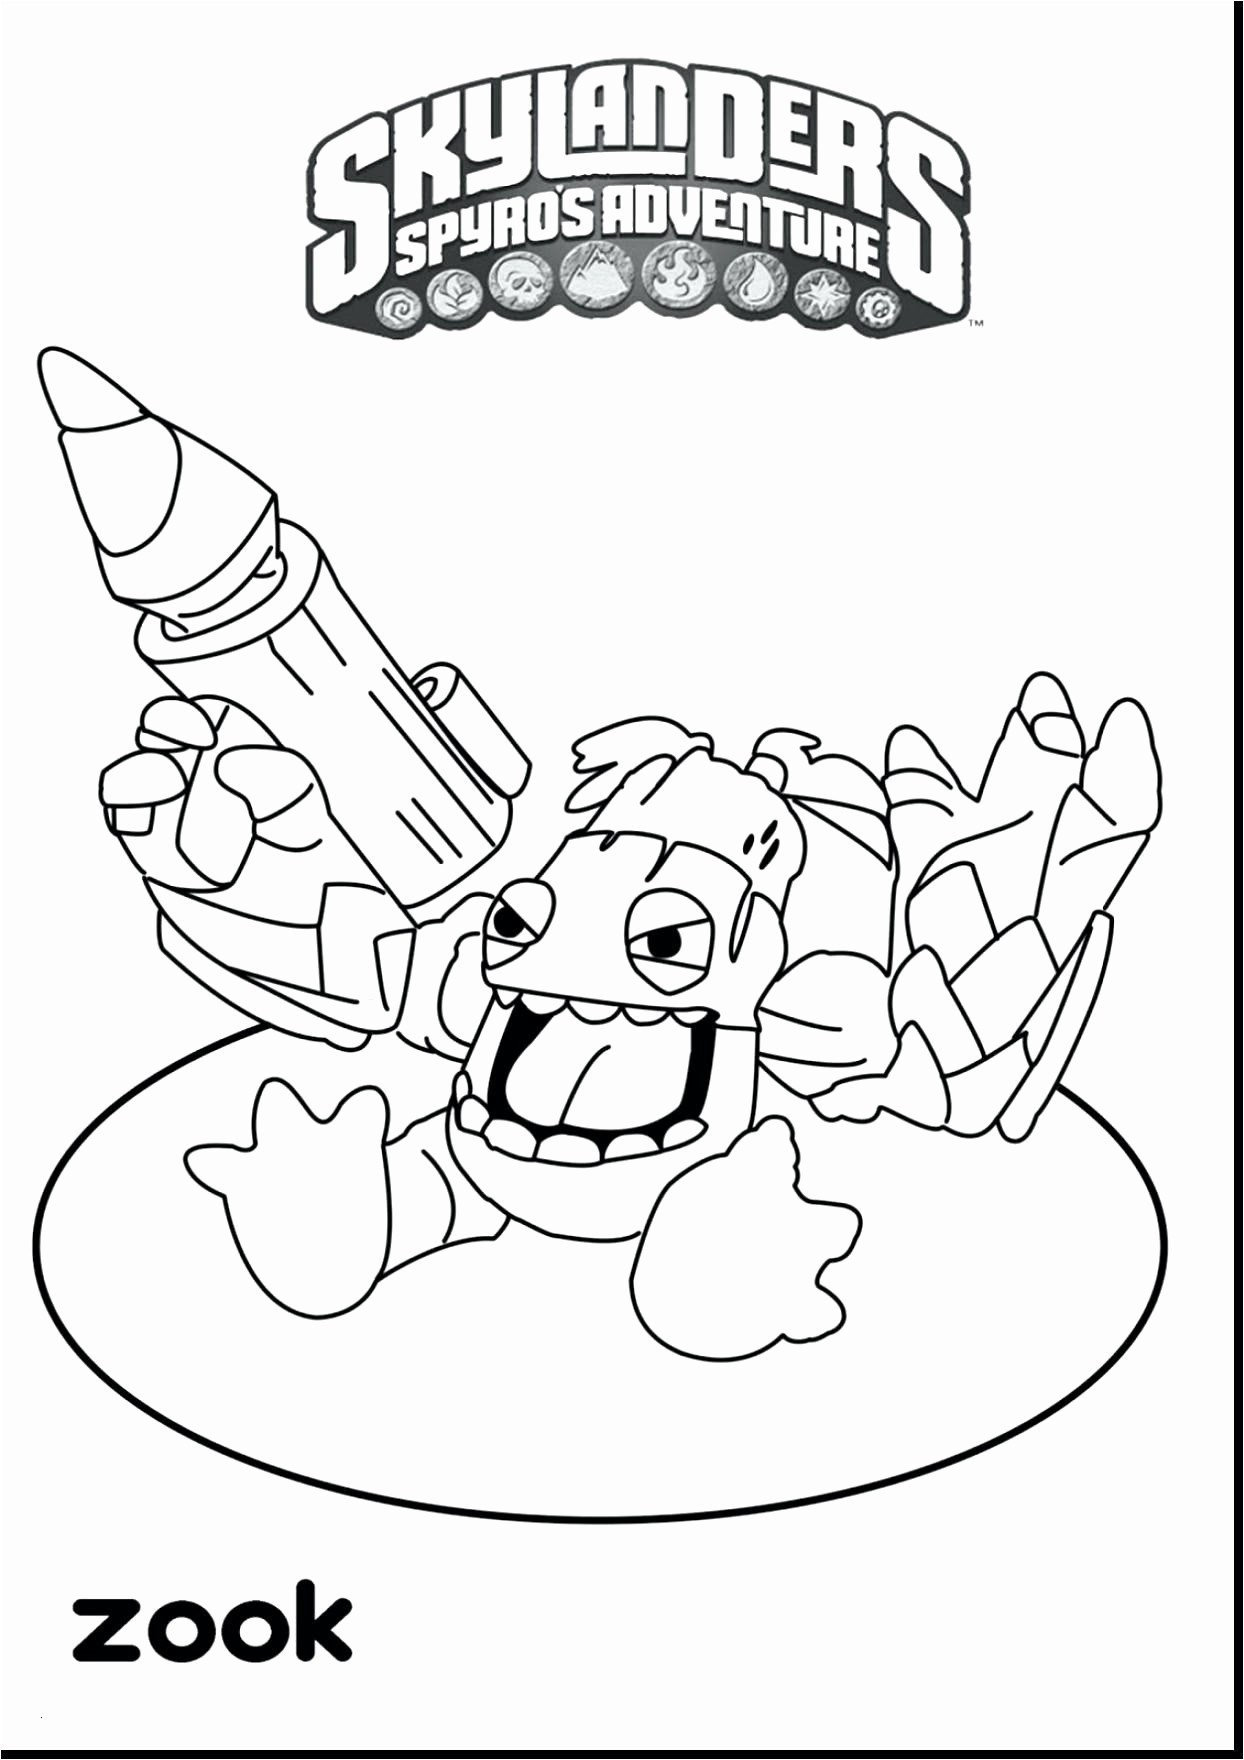 coloring book pages online Collection-Star Wars Coloring Book Pages Coloring Book Print 21csb Coloring Inspirierend Ausmalbilder Star Wars Clone Wars 16-d